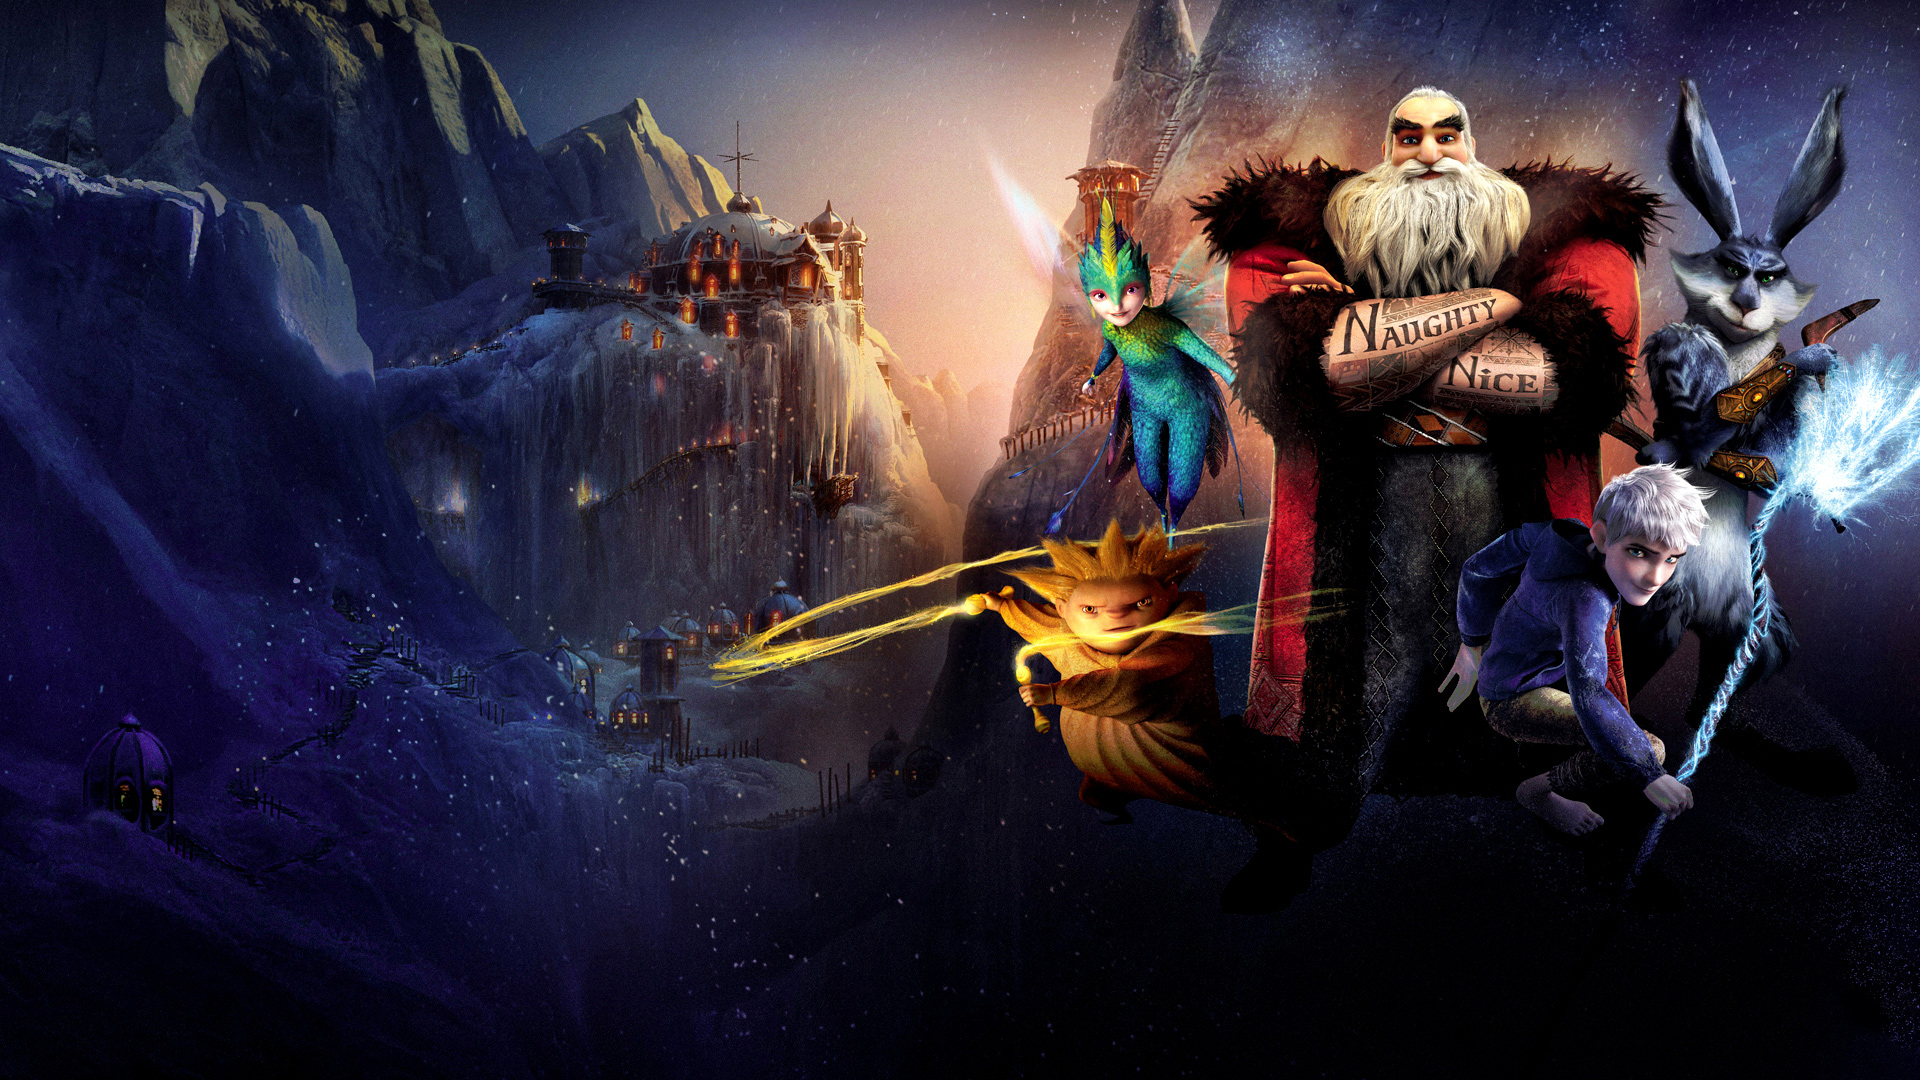 1920x1080 - Rise Of The Guardians Wallpapers 2